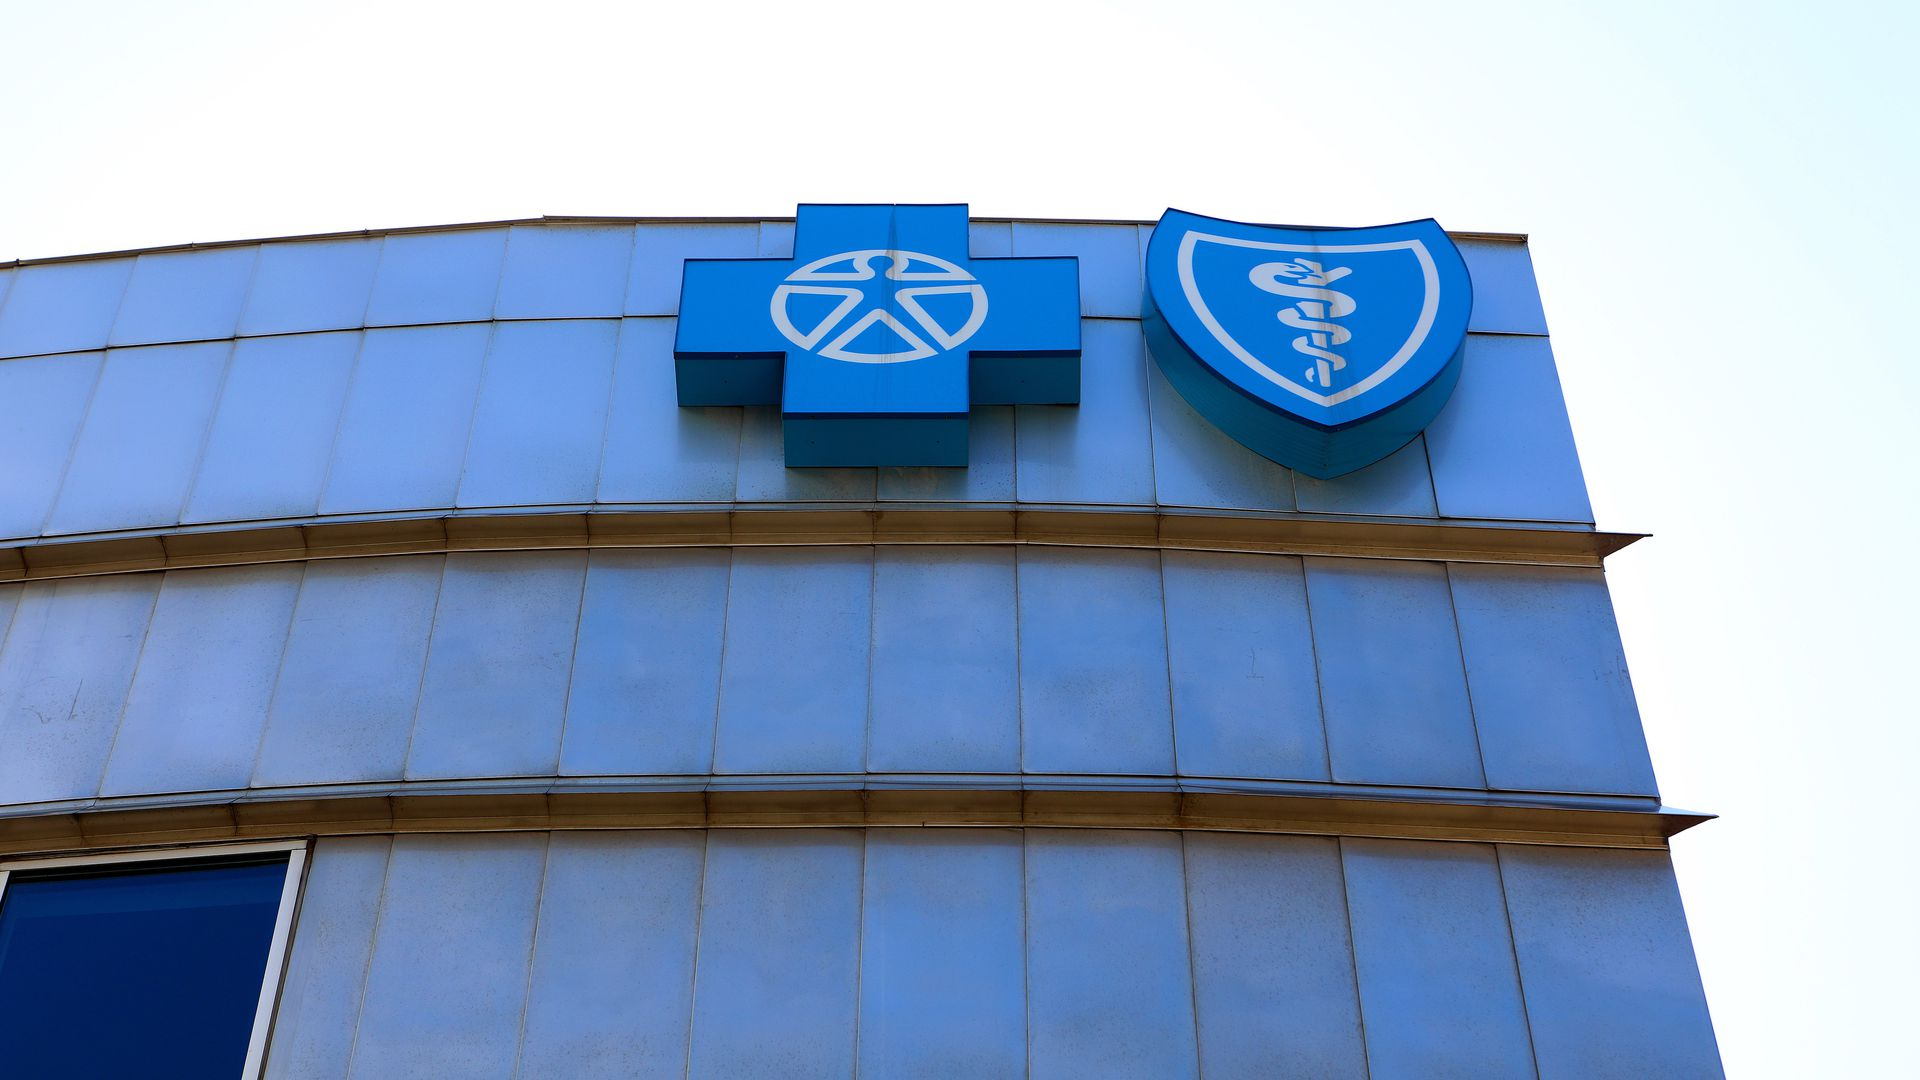 Blue Cross and Blue Shield of Michigan headquarters.